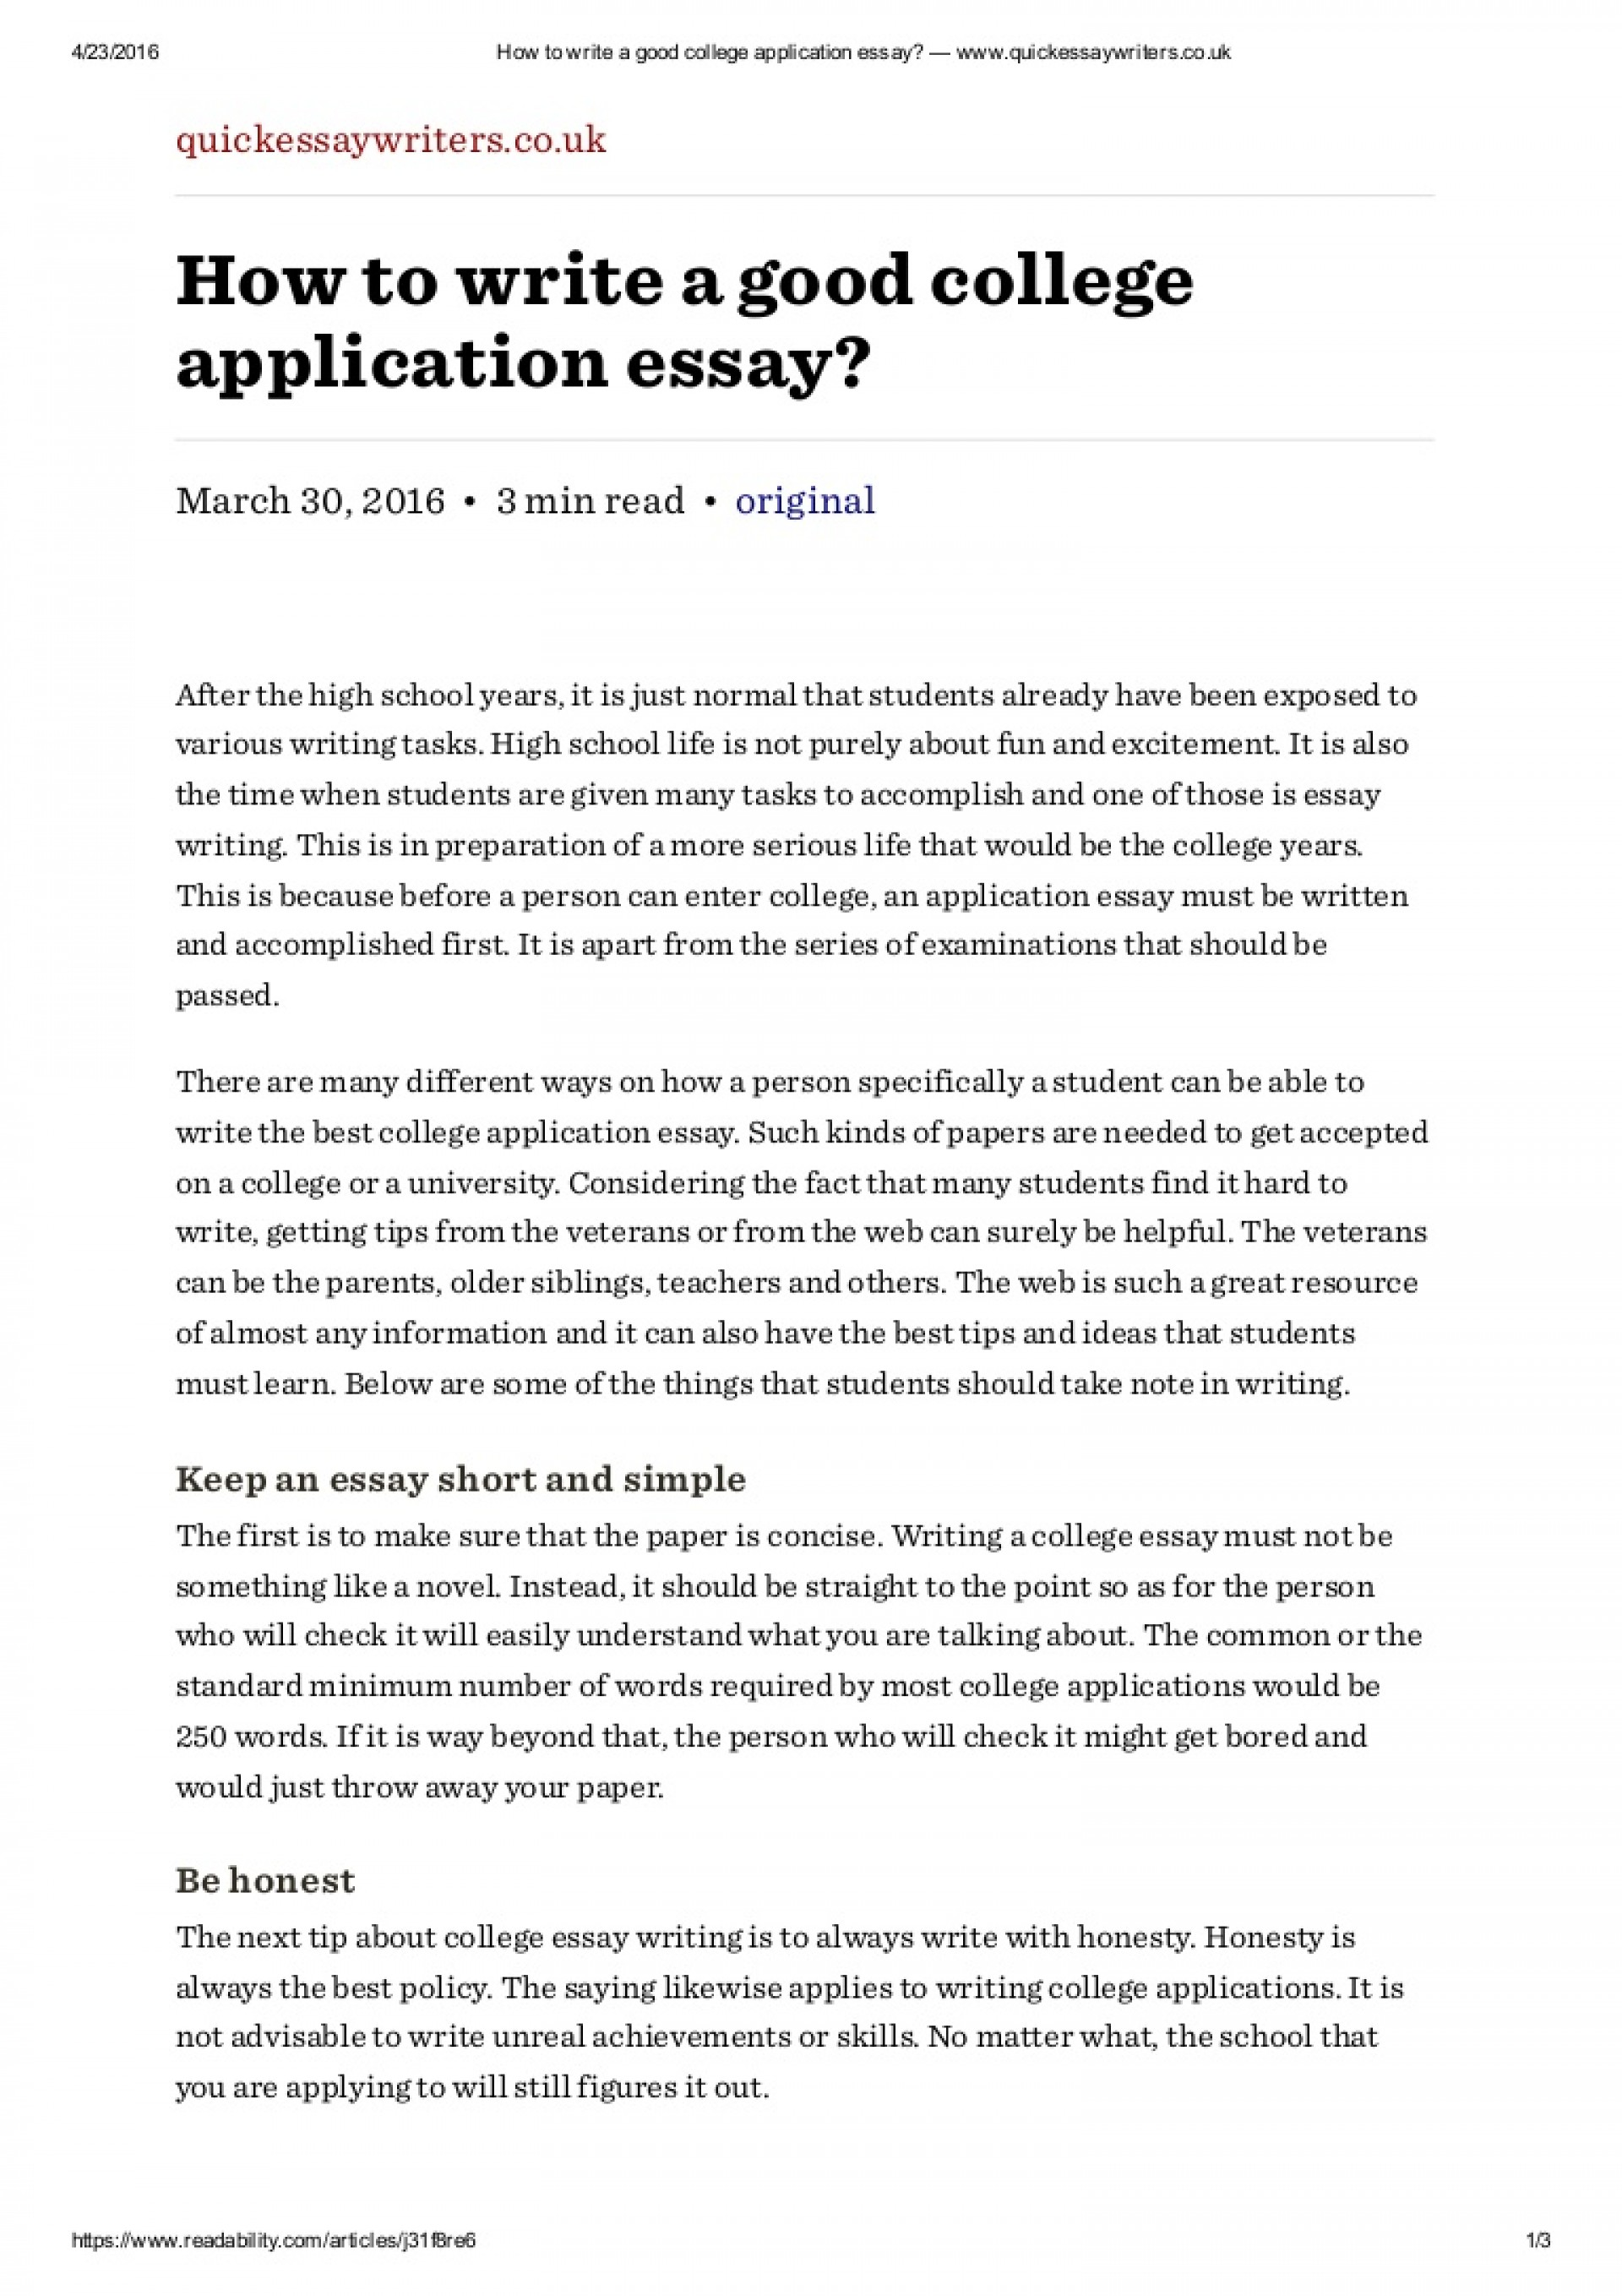 009 Howtowriteagoodcollegeapplicationessaywww Thumbnail Essay Example Writing College Rare A Application How To Write Outline Tips For Entrance 1920